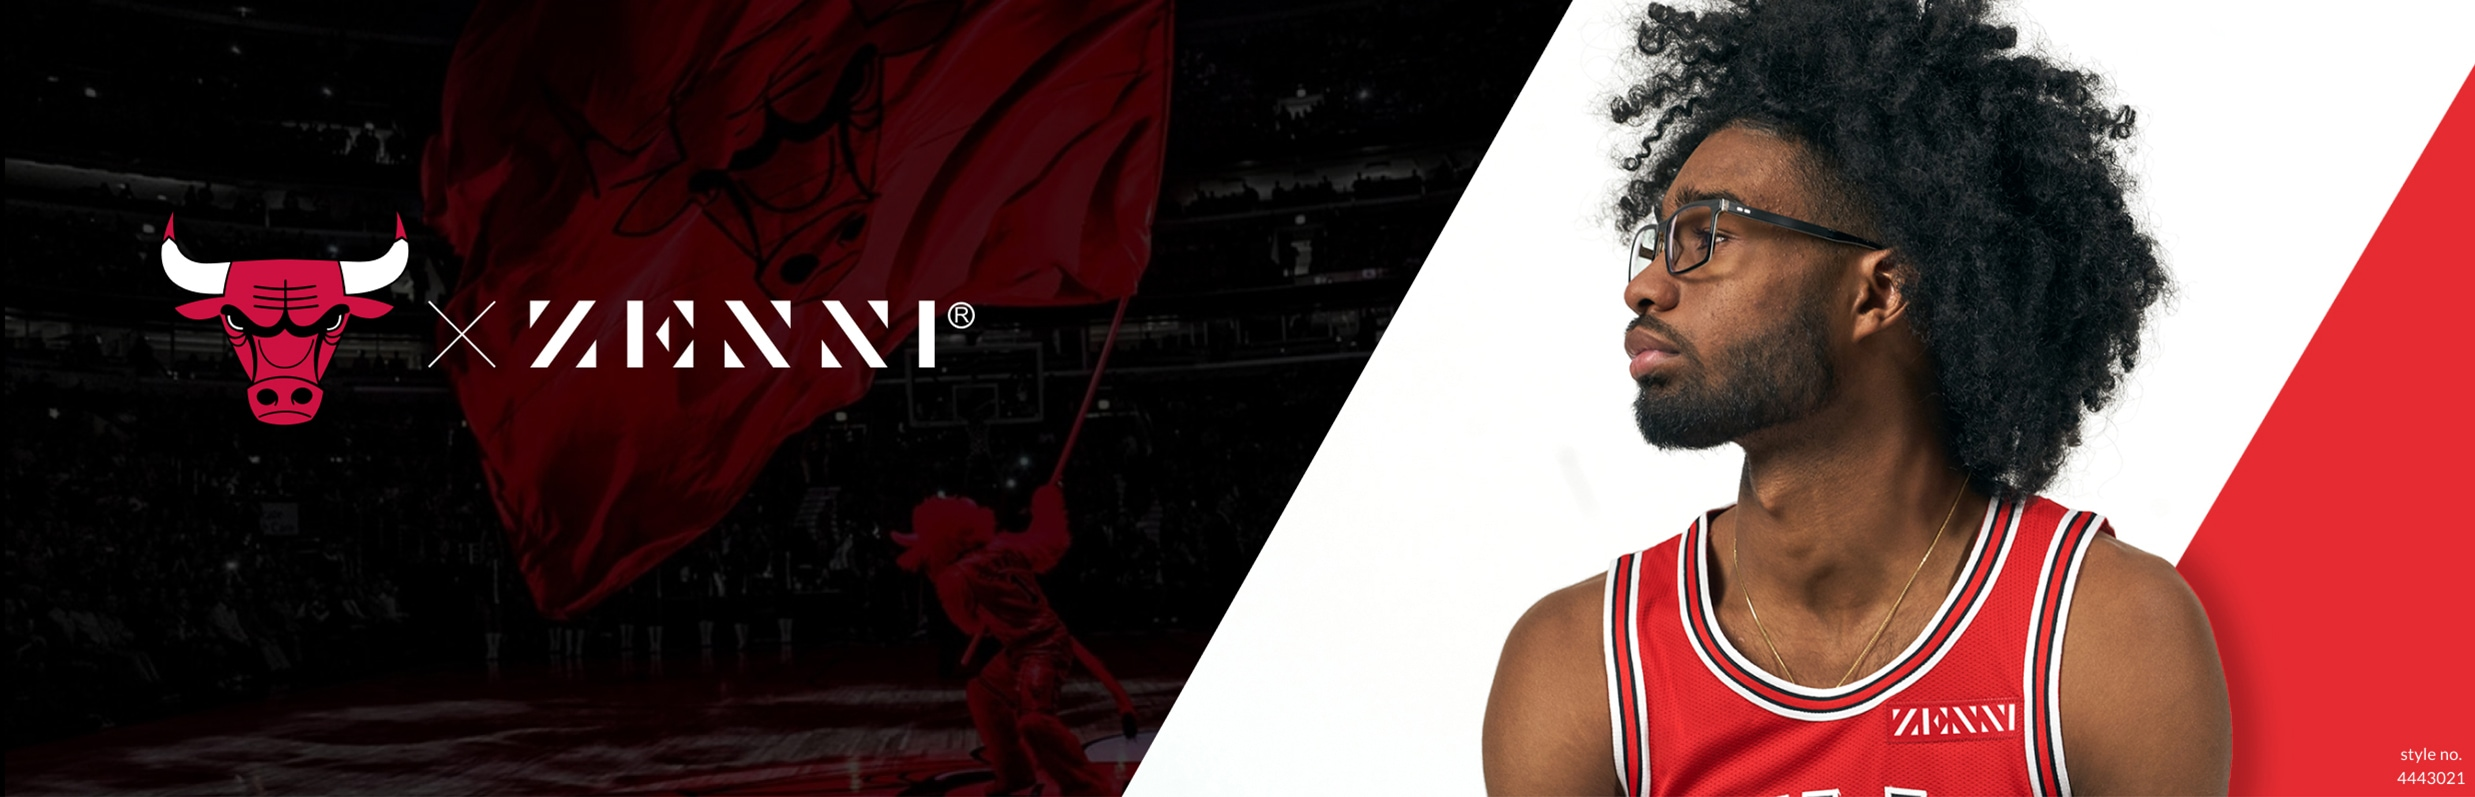 Chicago Bulls X Zenni. Coby White wearing Zenni black rectangle glasses #4443021, against a red and white background.